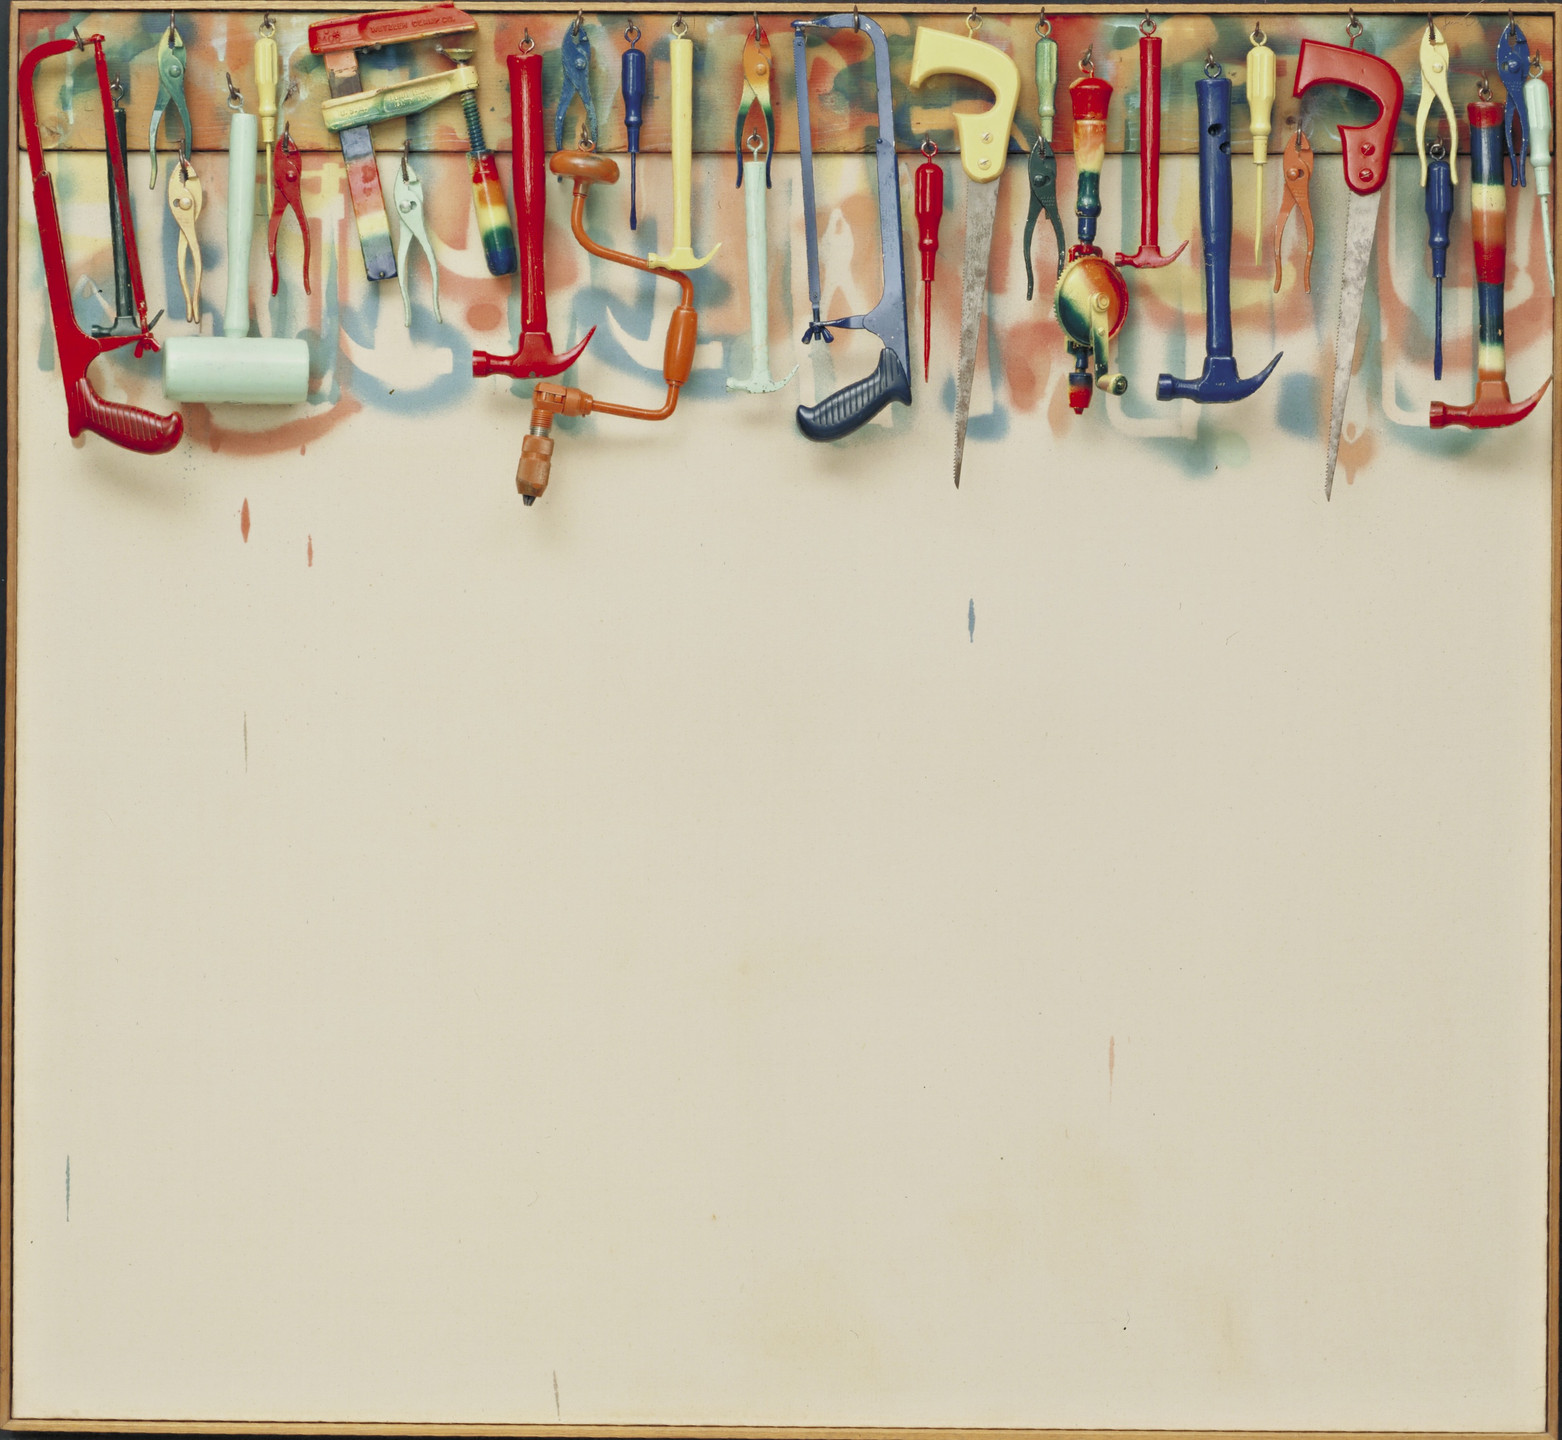 Jim Dine. Five Feet of Colorful Tools. 1962